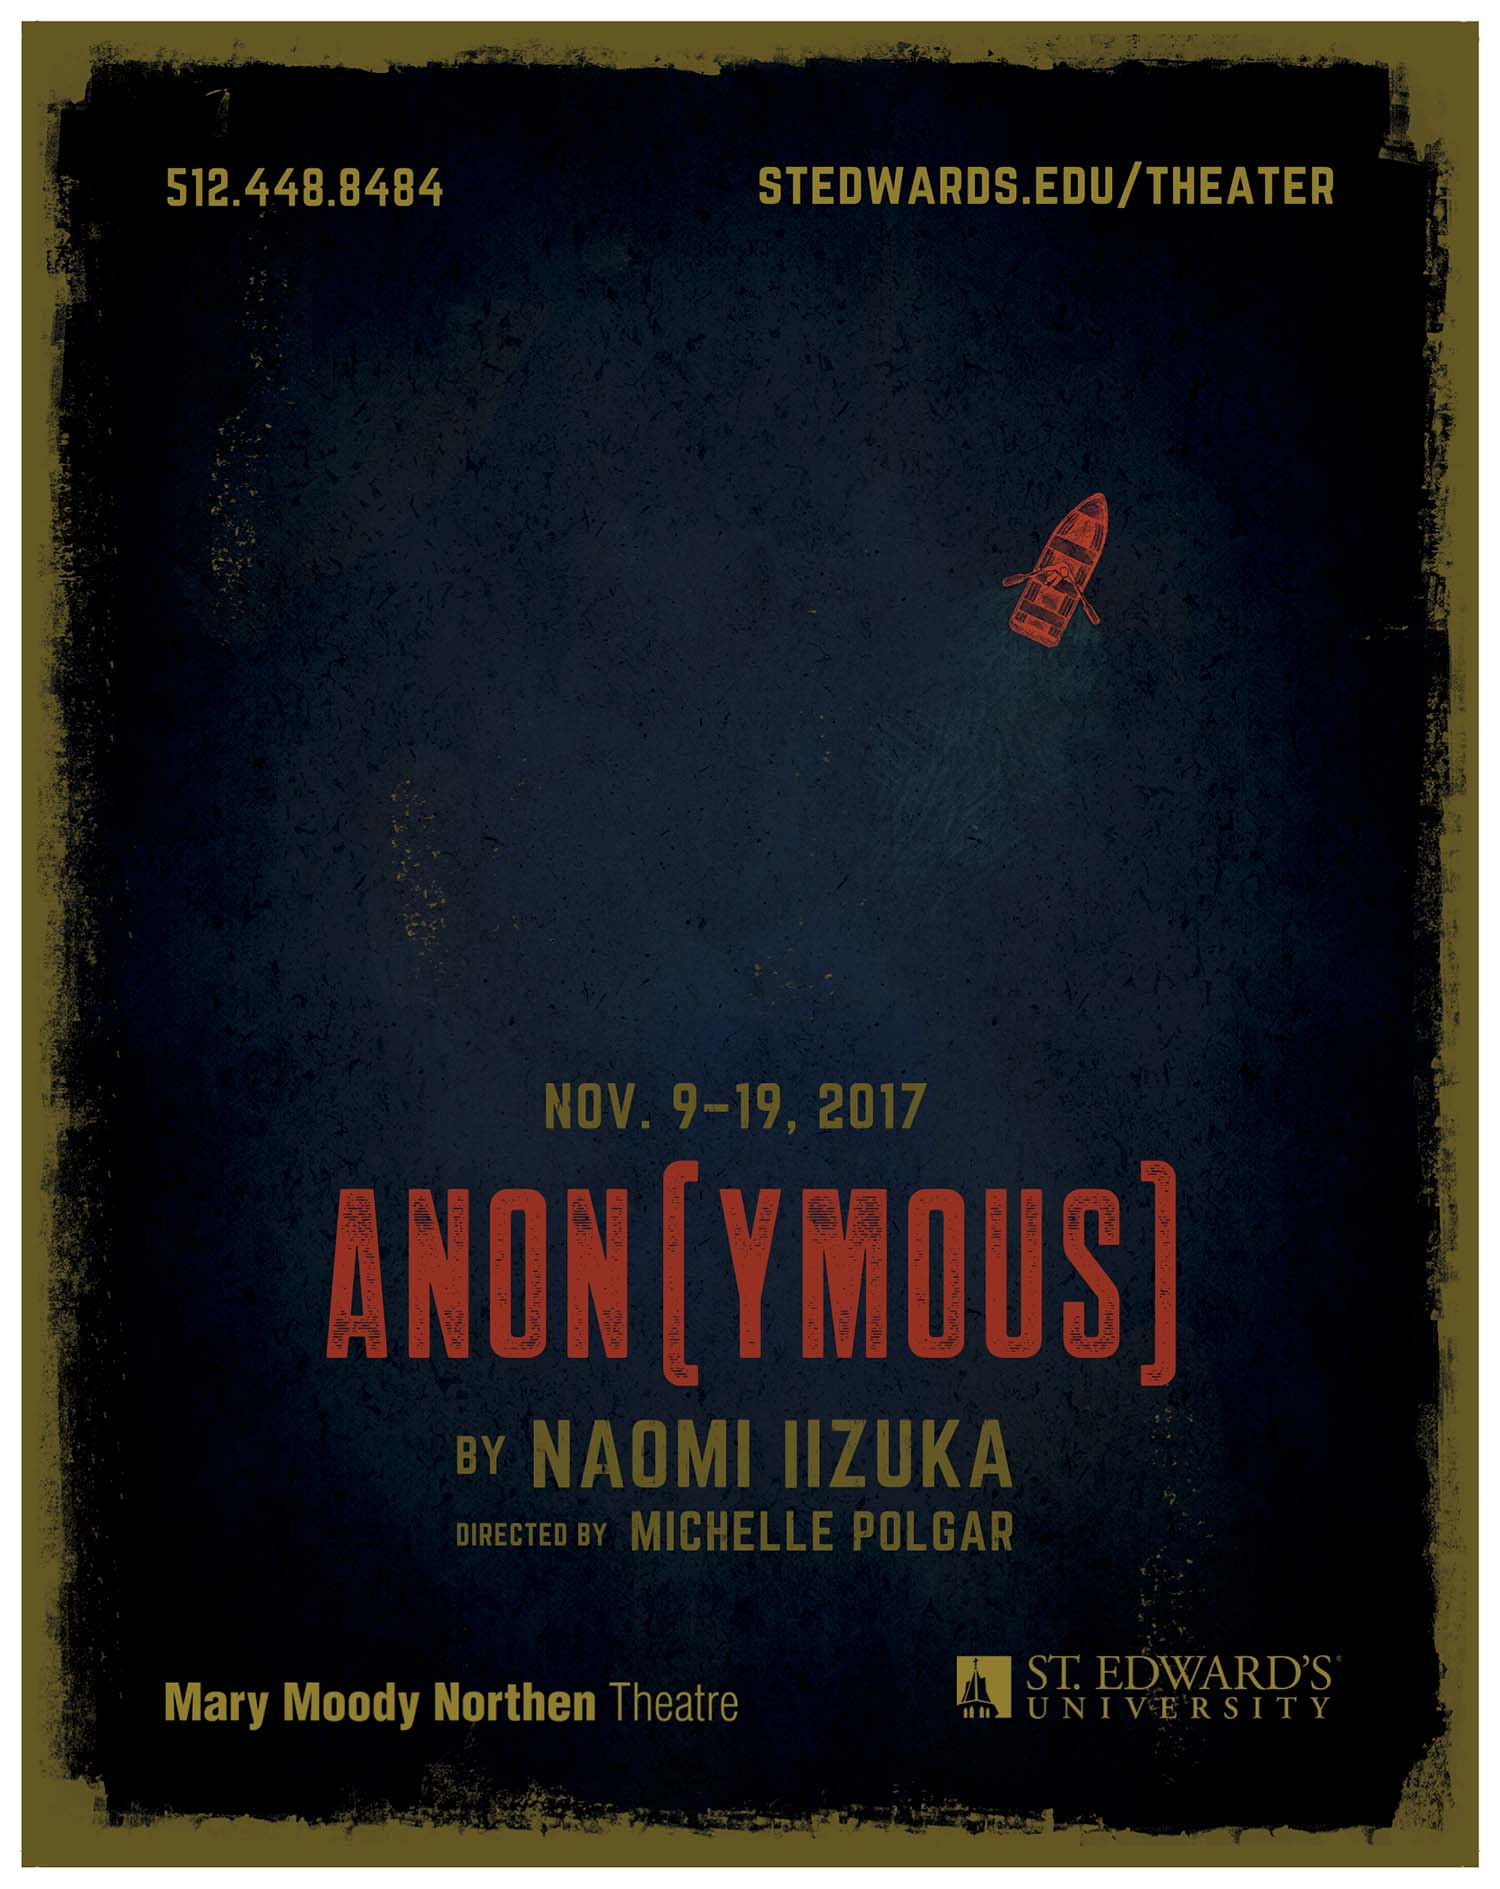 Anon(ymous) poster